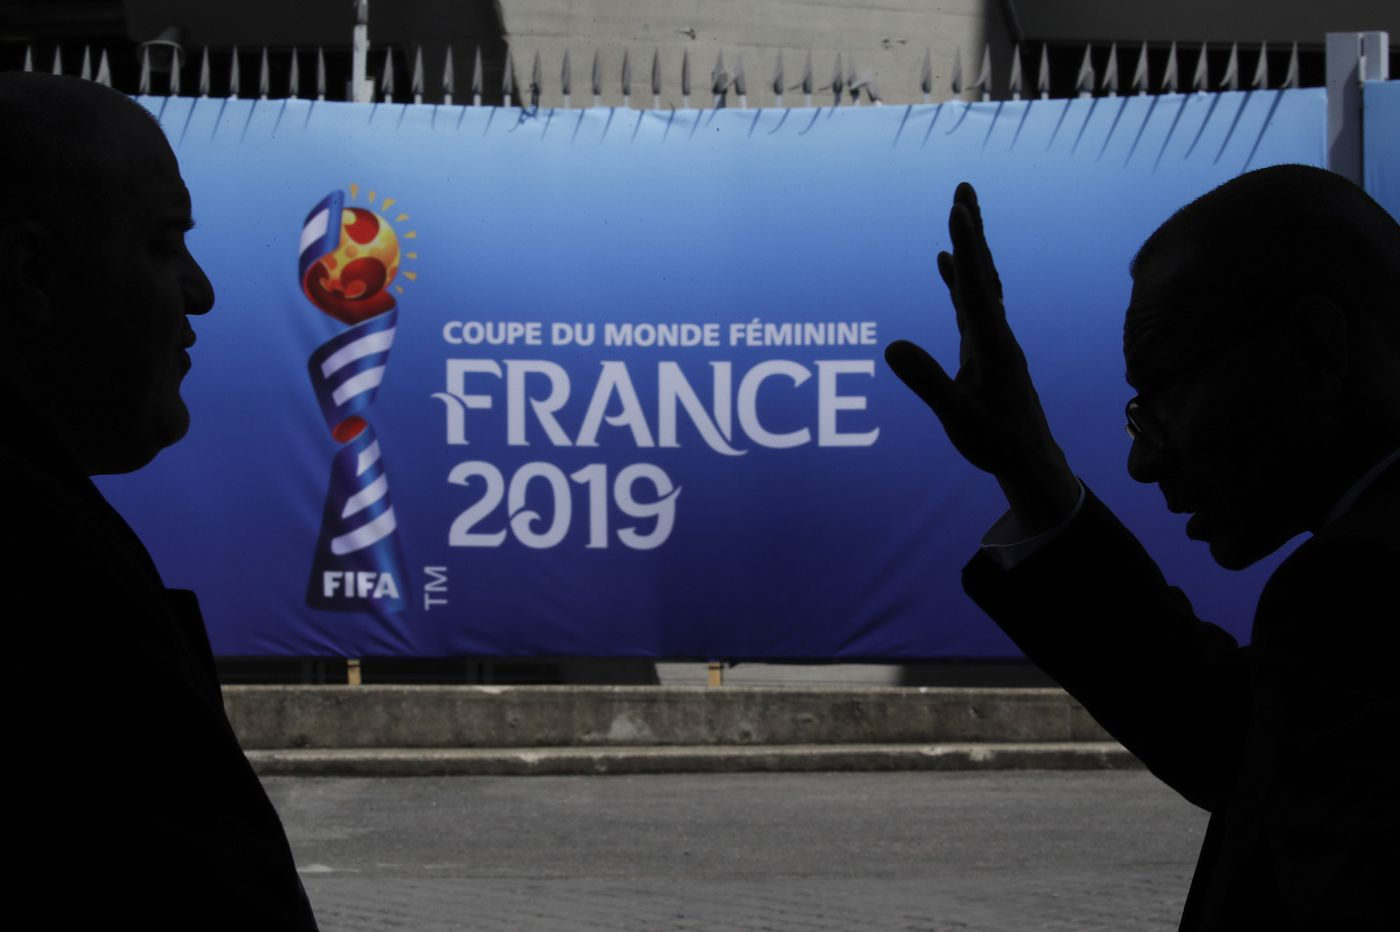 Women's World Cup 2019: How to watch on Fox, Telemundo and